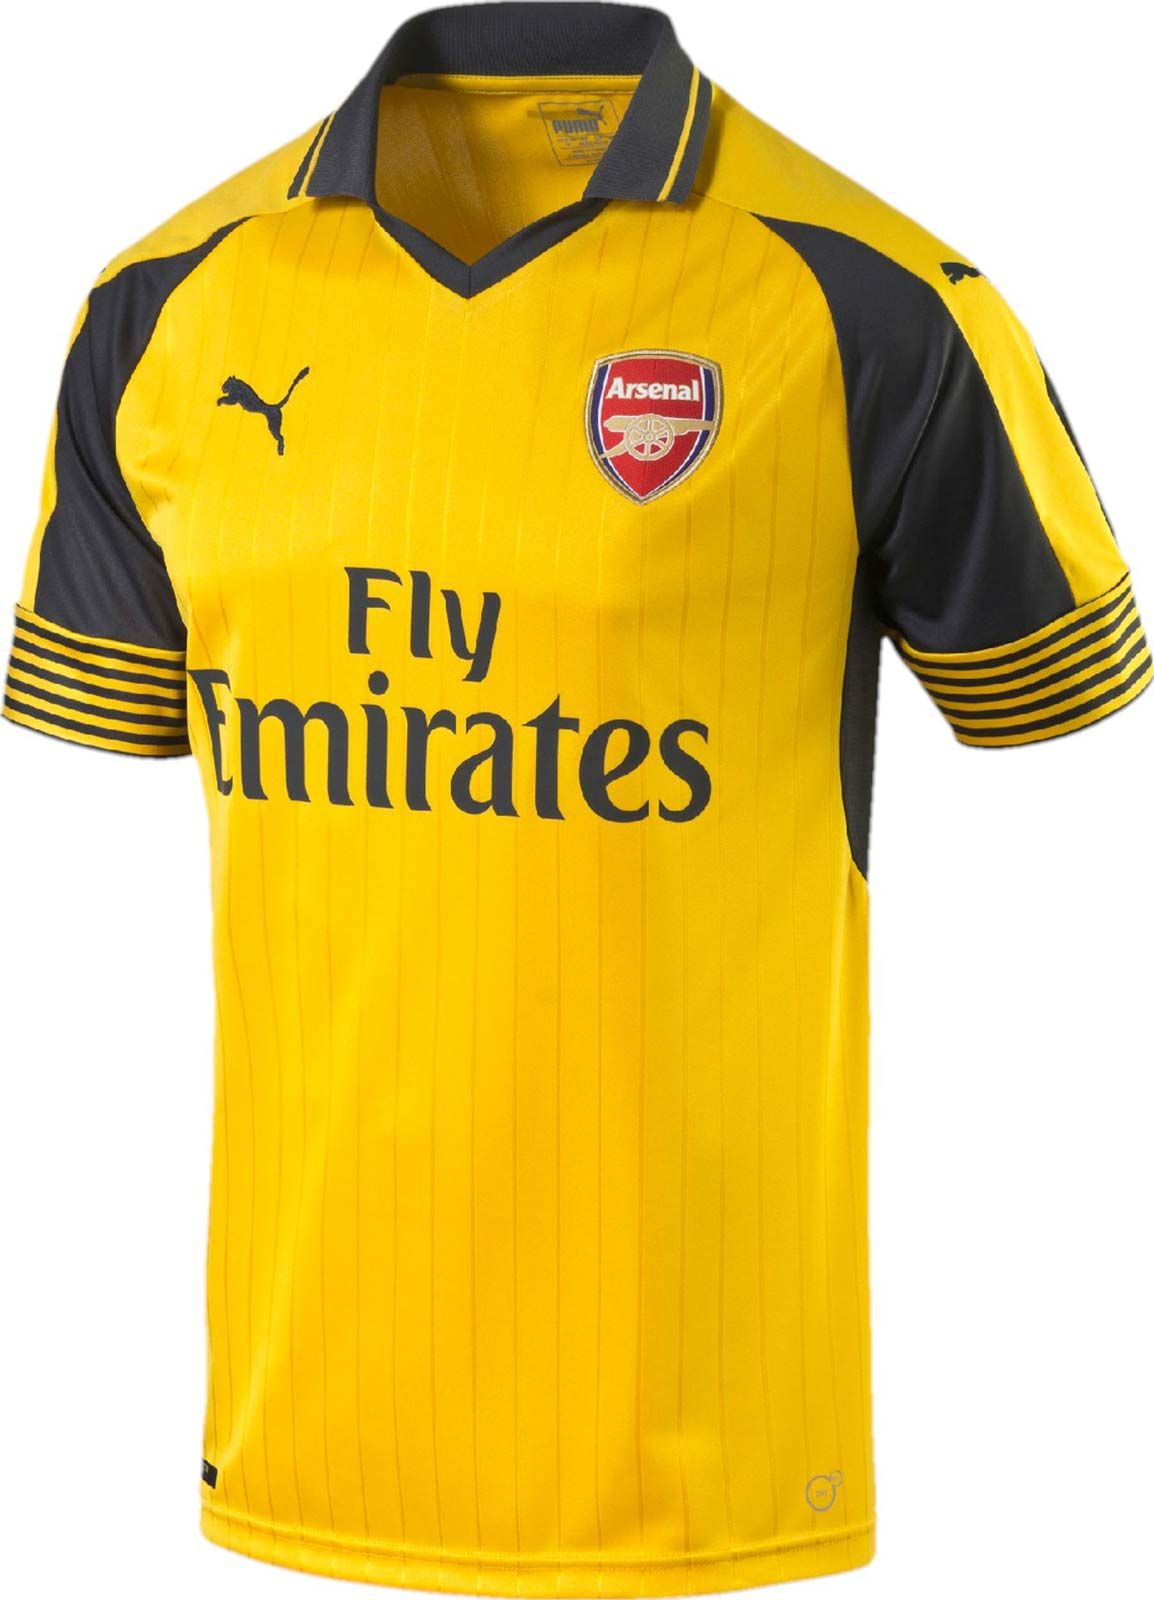 big sale 7032c bae56 The new Arsenal 2016-2017 Away Jersey introduces a vintage ...